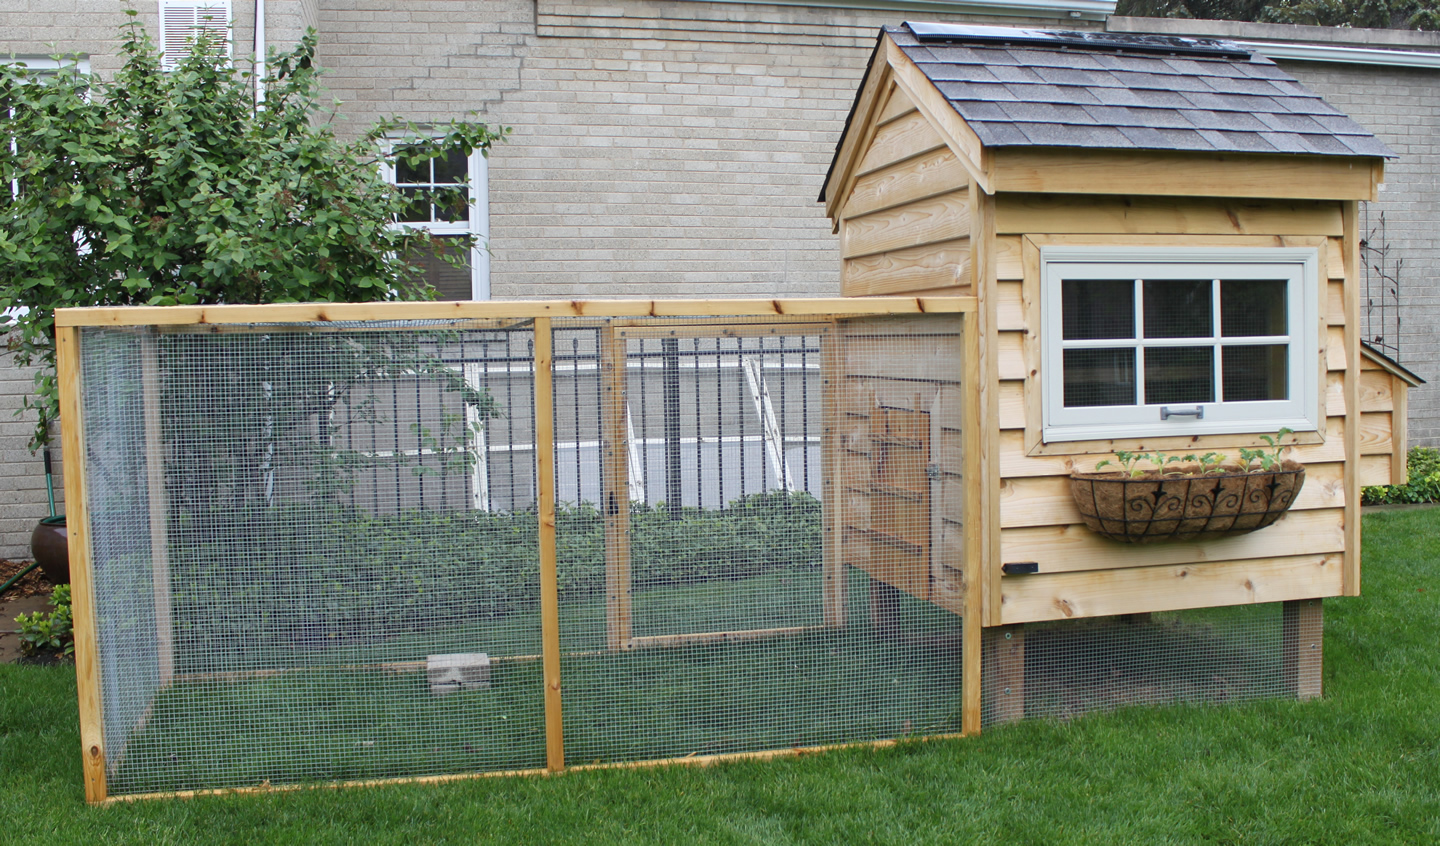 5 Ways To Protect Your Chickens from Fowl Play: De-Fence | Homesteading Today Ideas To Get You Started